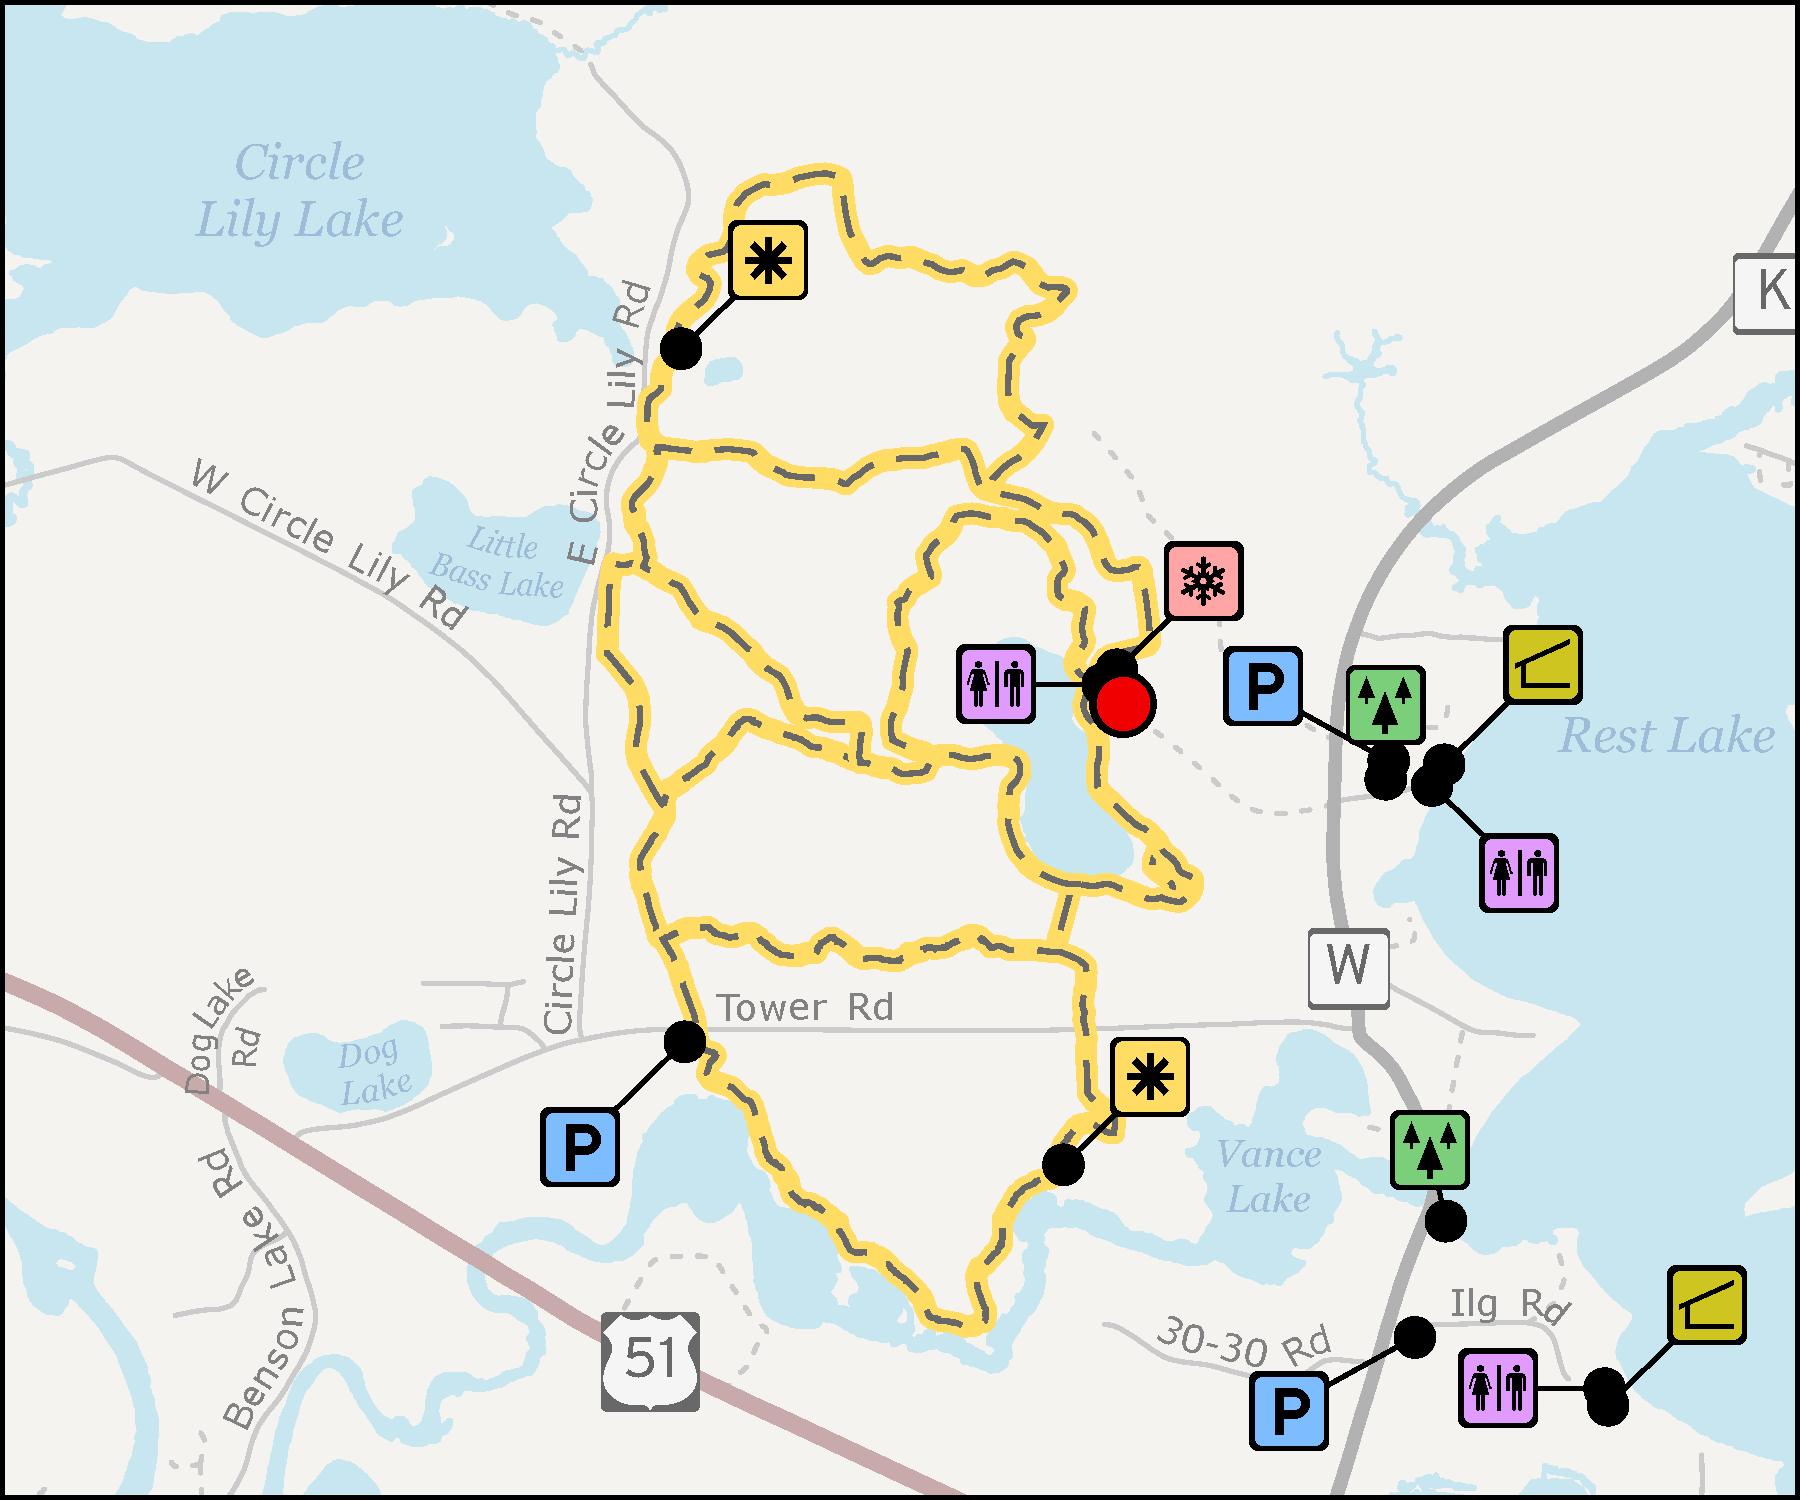 North Lakeland Discovery Center Trails